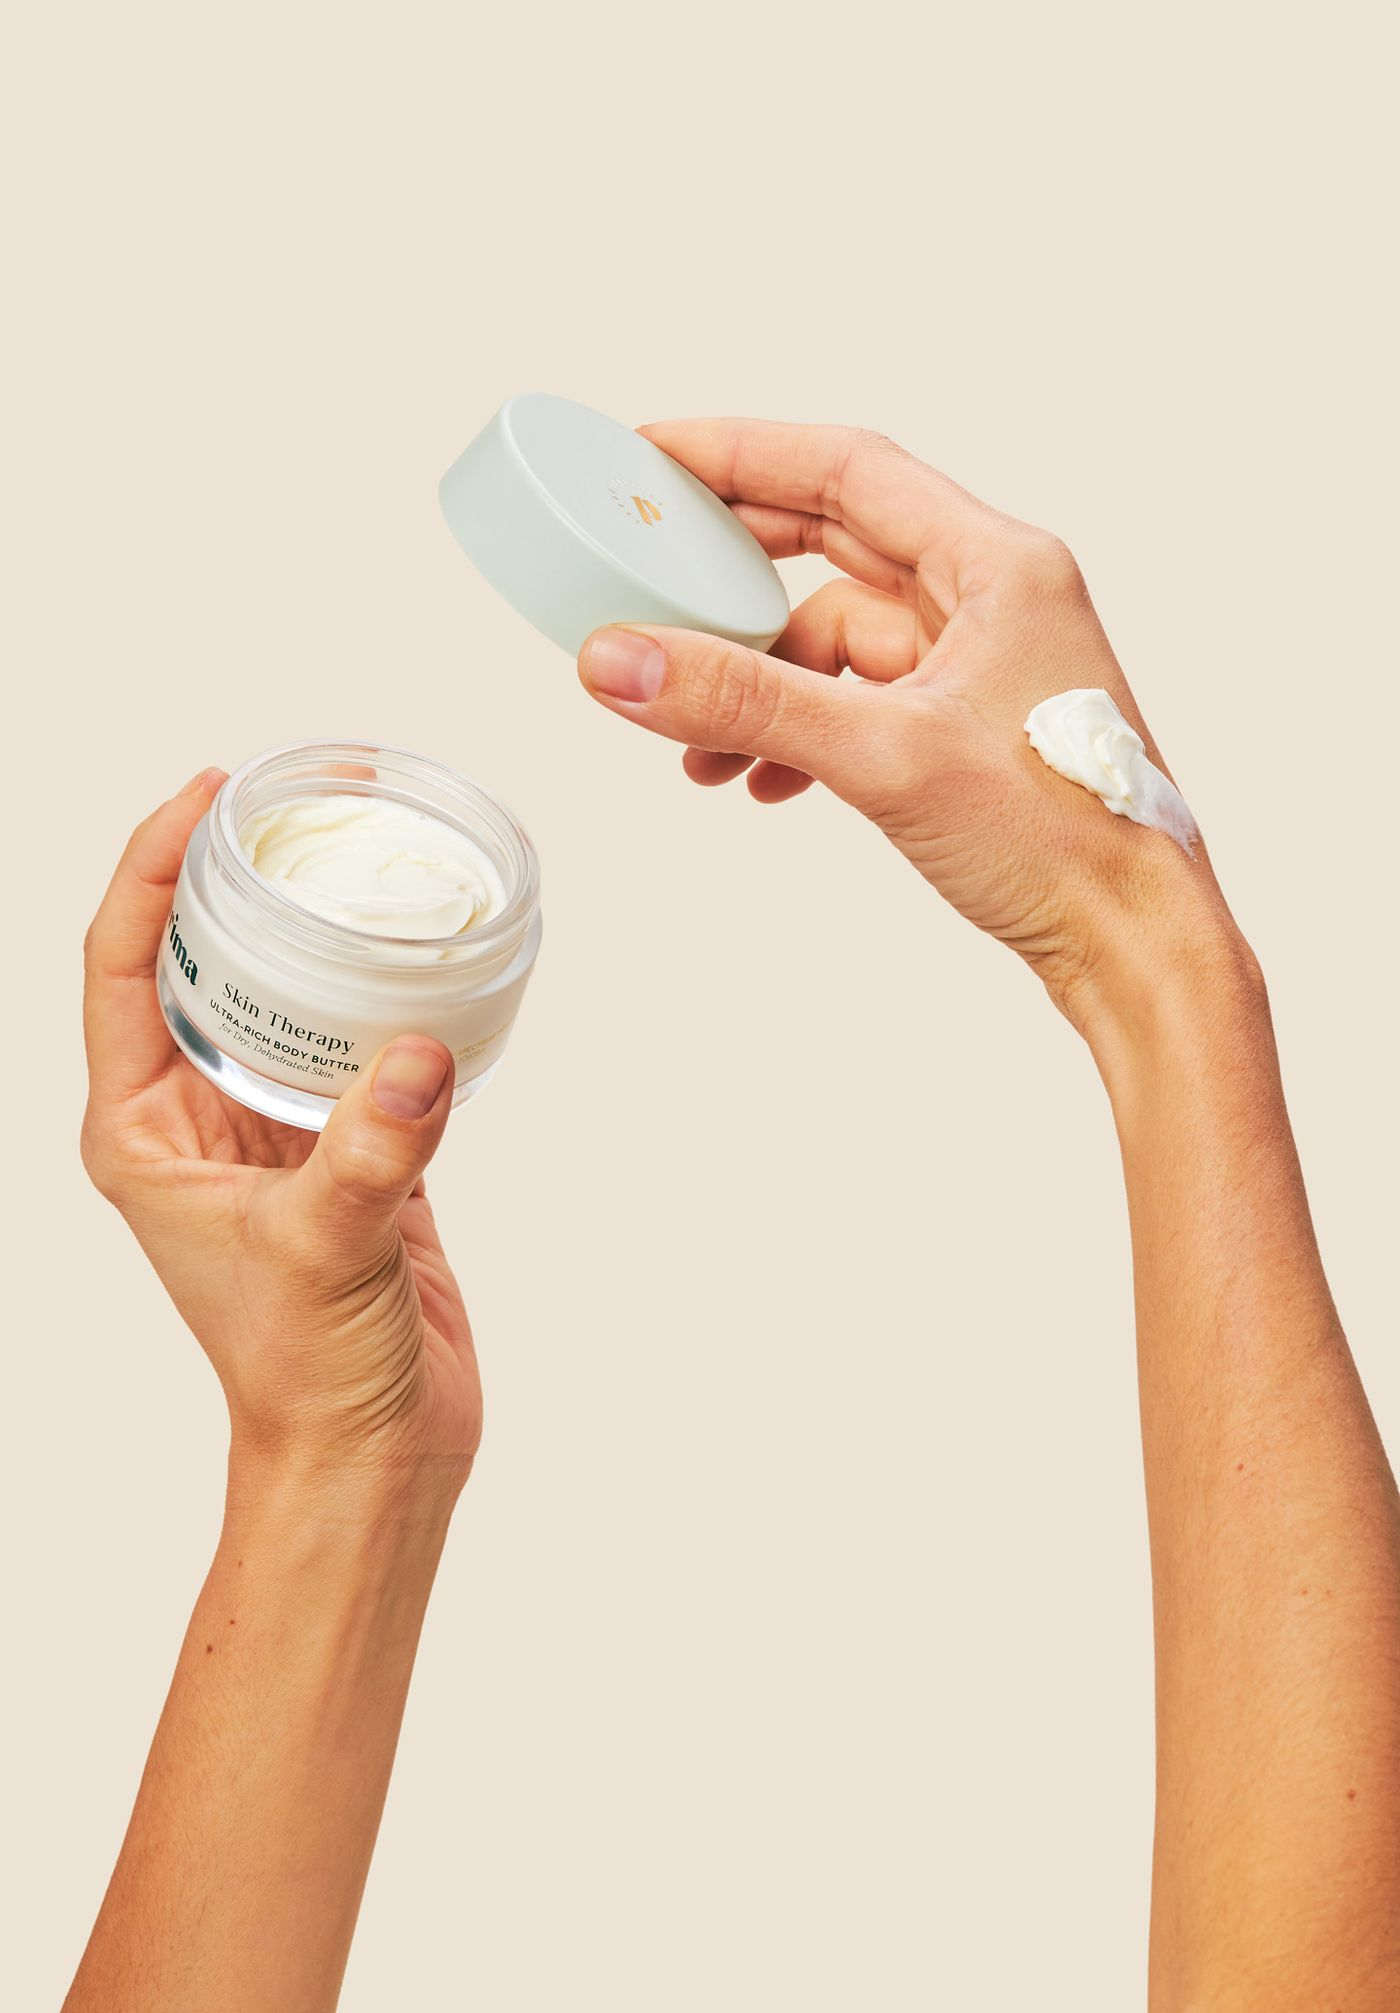 Applying Prima's Ultra-rich CBD Body Butter